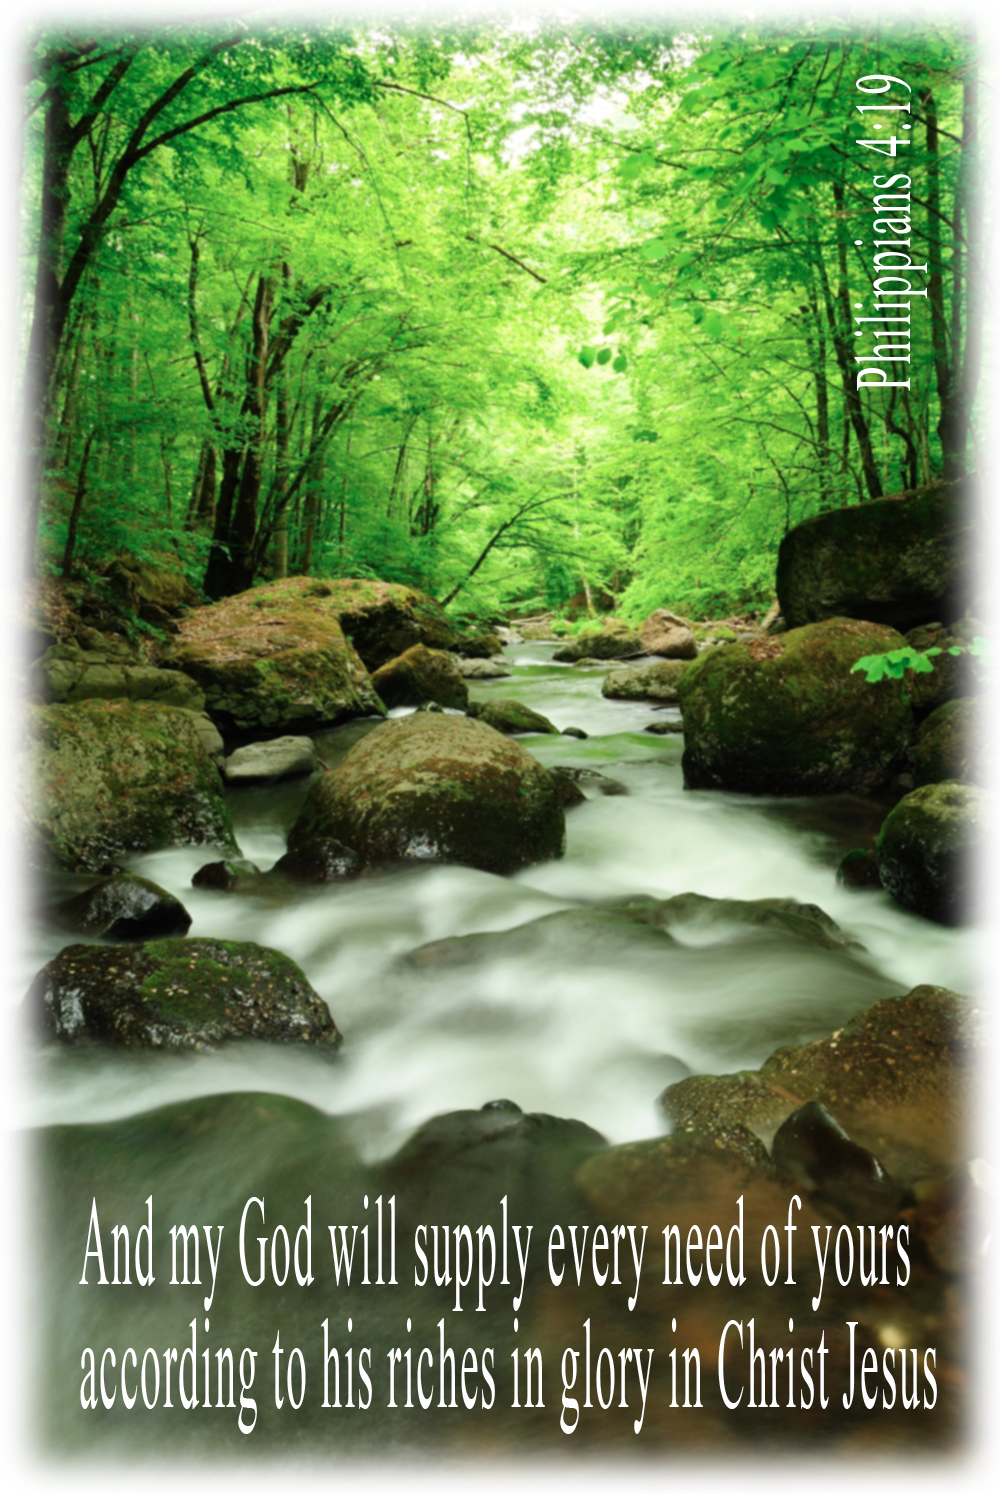 God will meet your needs! Devotional and free image download at http://scripturesquegraphics.com/jumping-up-and-down/ Click on the image!